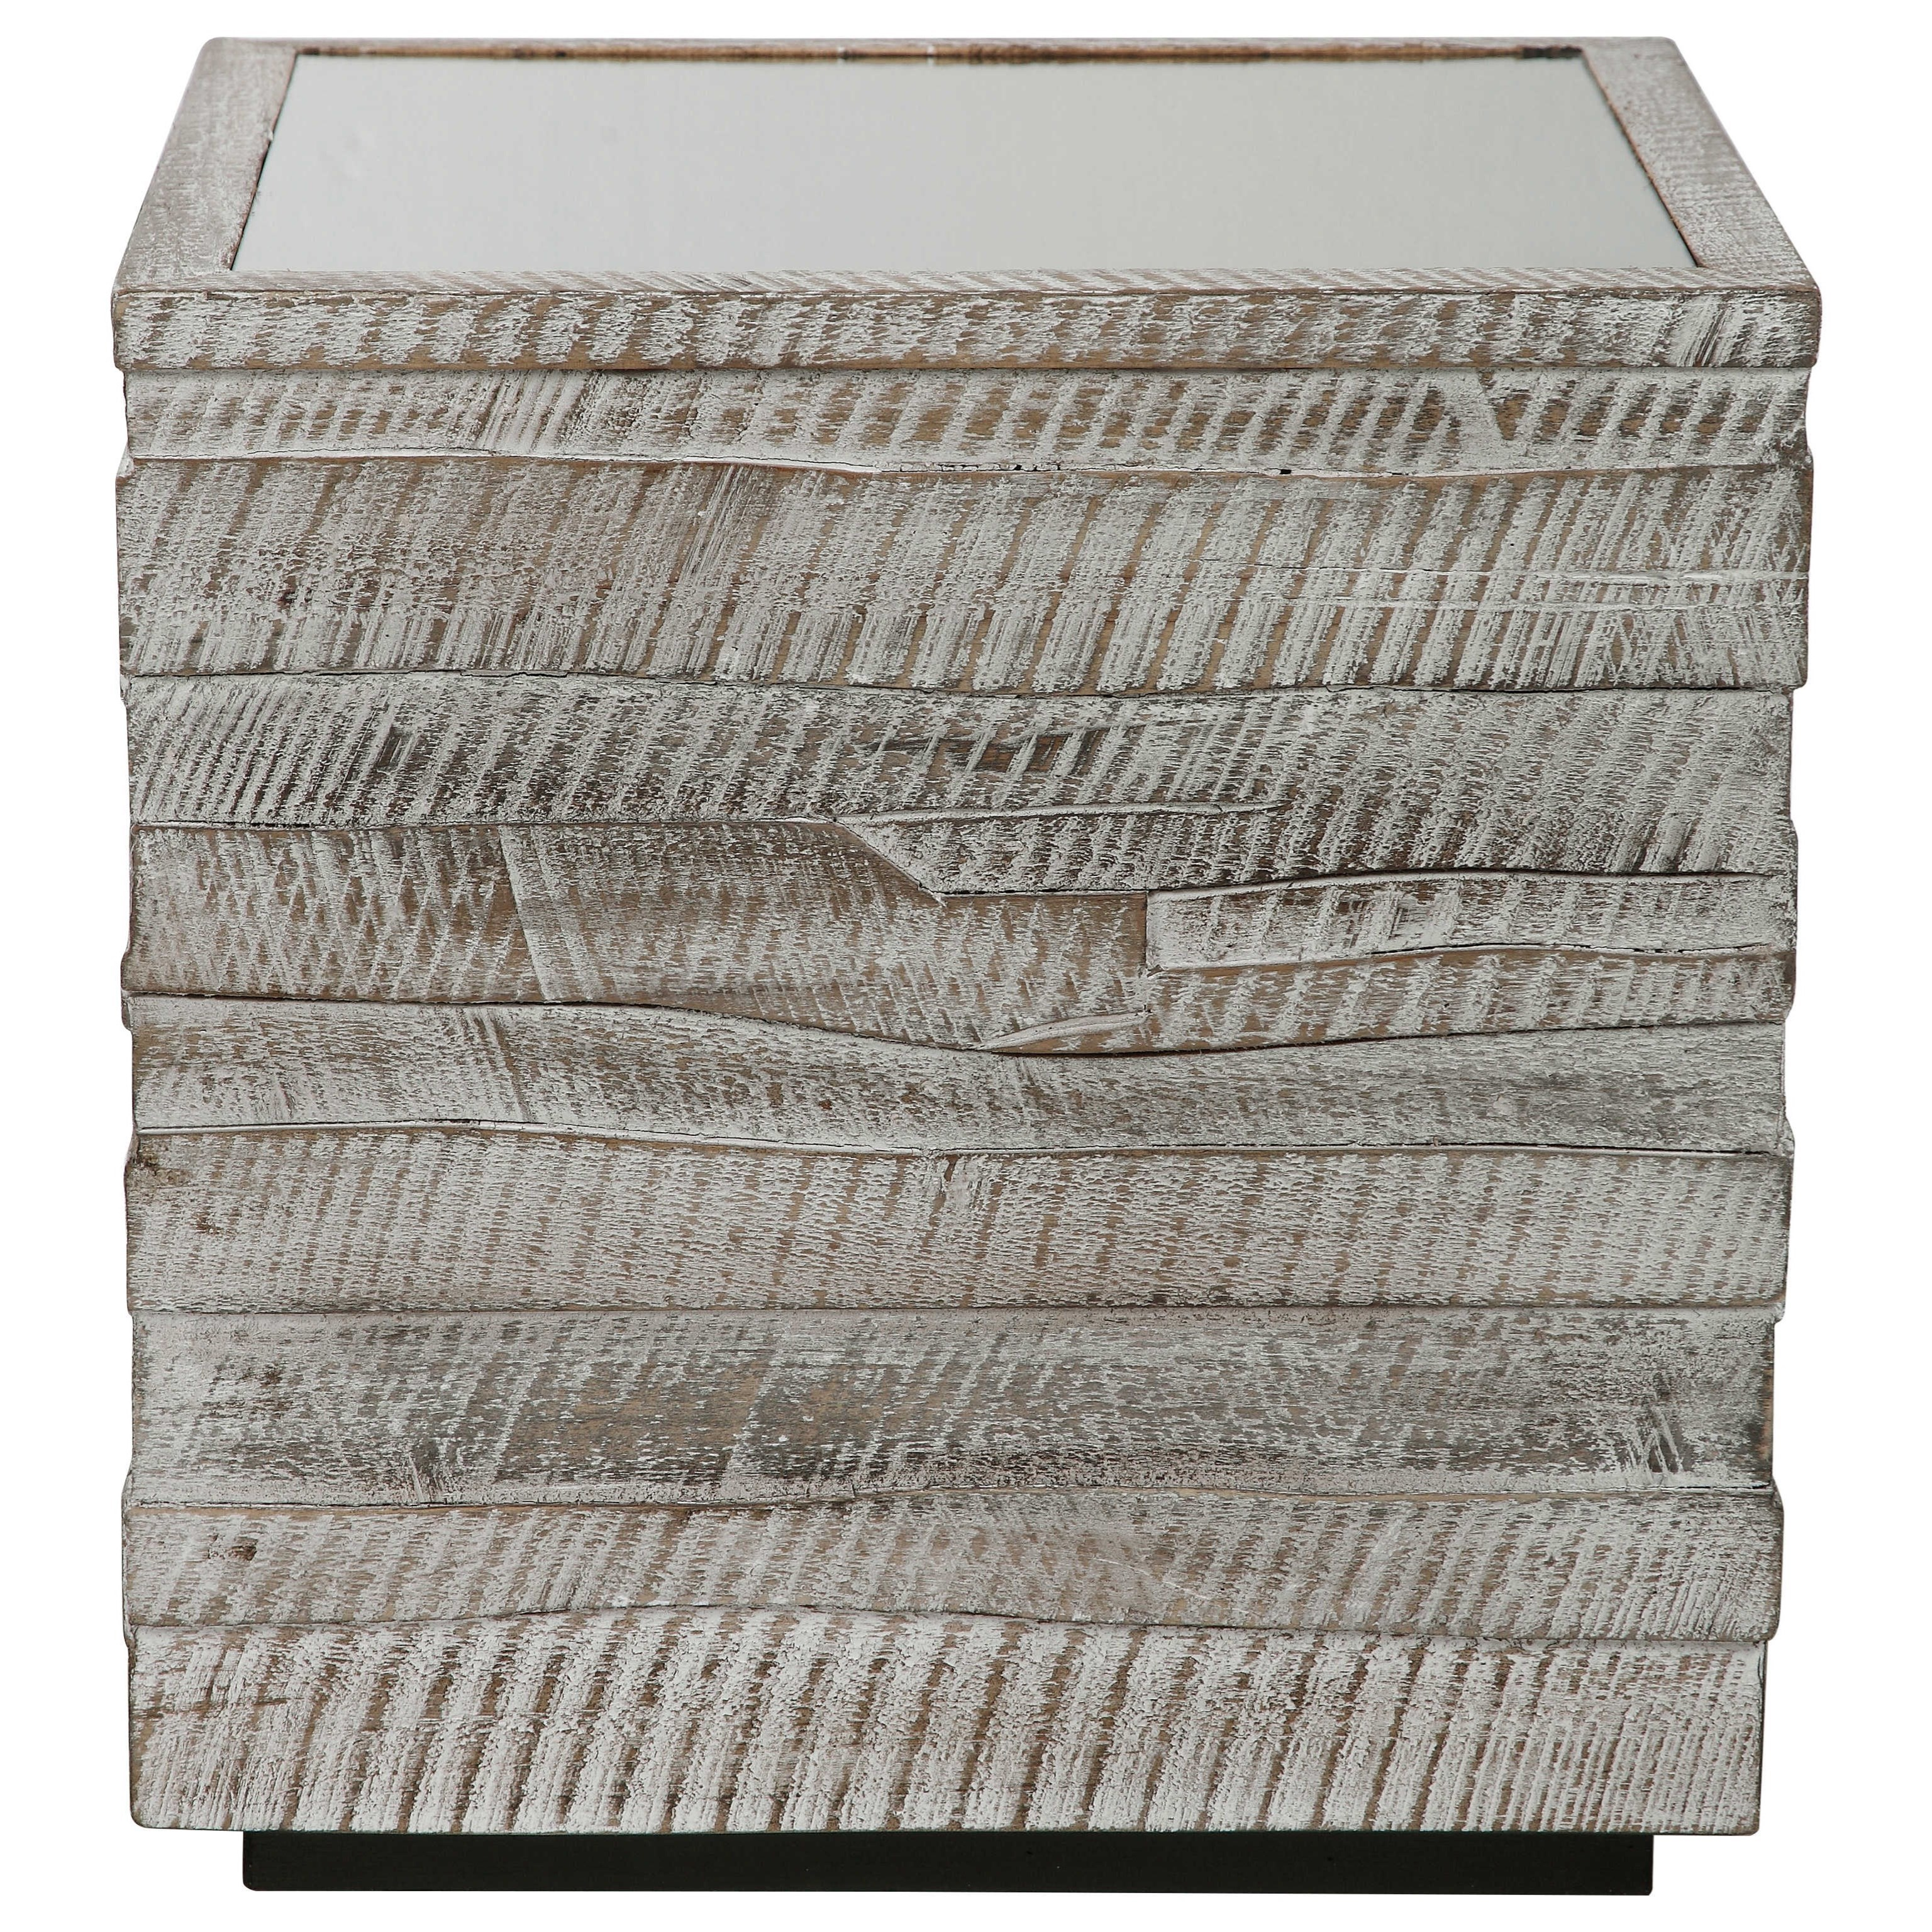 Accent Furniture - Occasional Tables Messinia Cube Table by Uttermost at Upper Room Home Furnishings